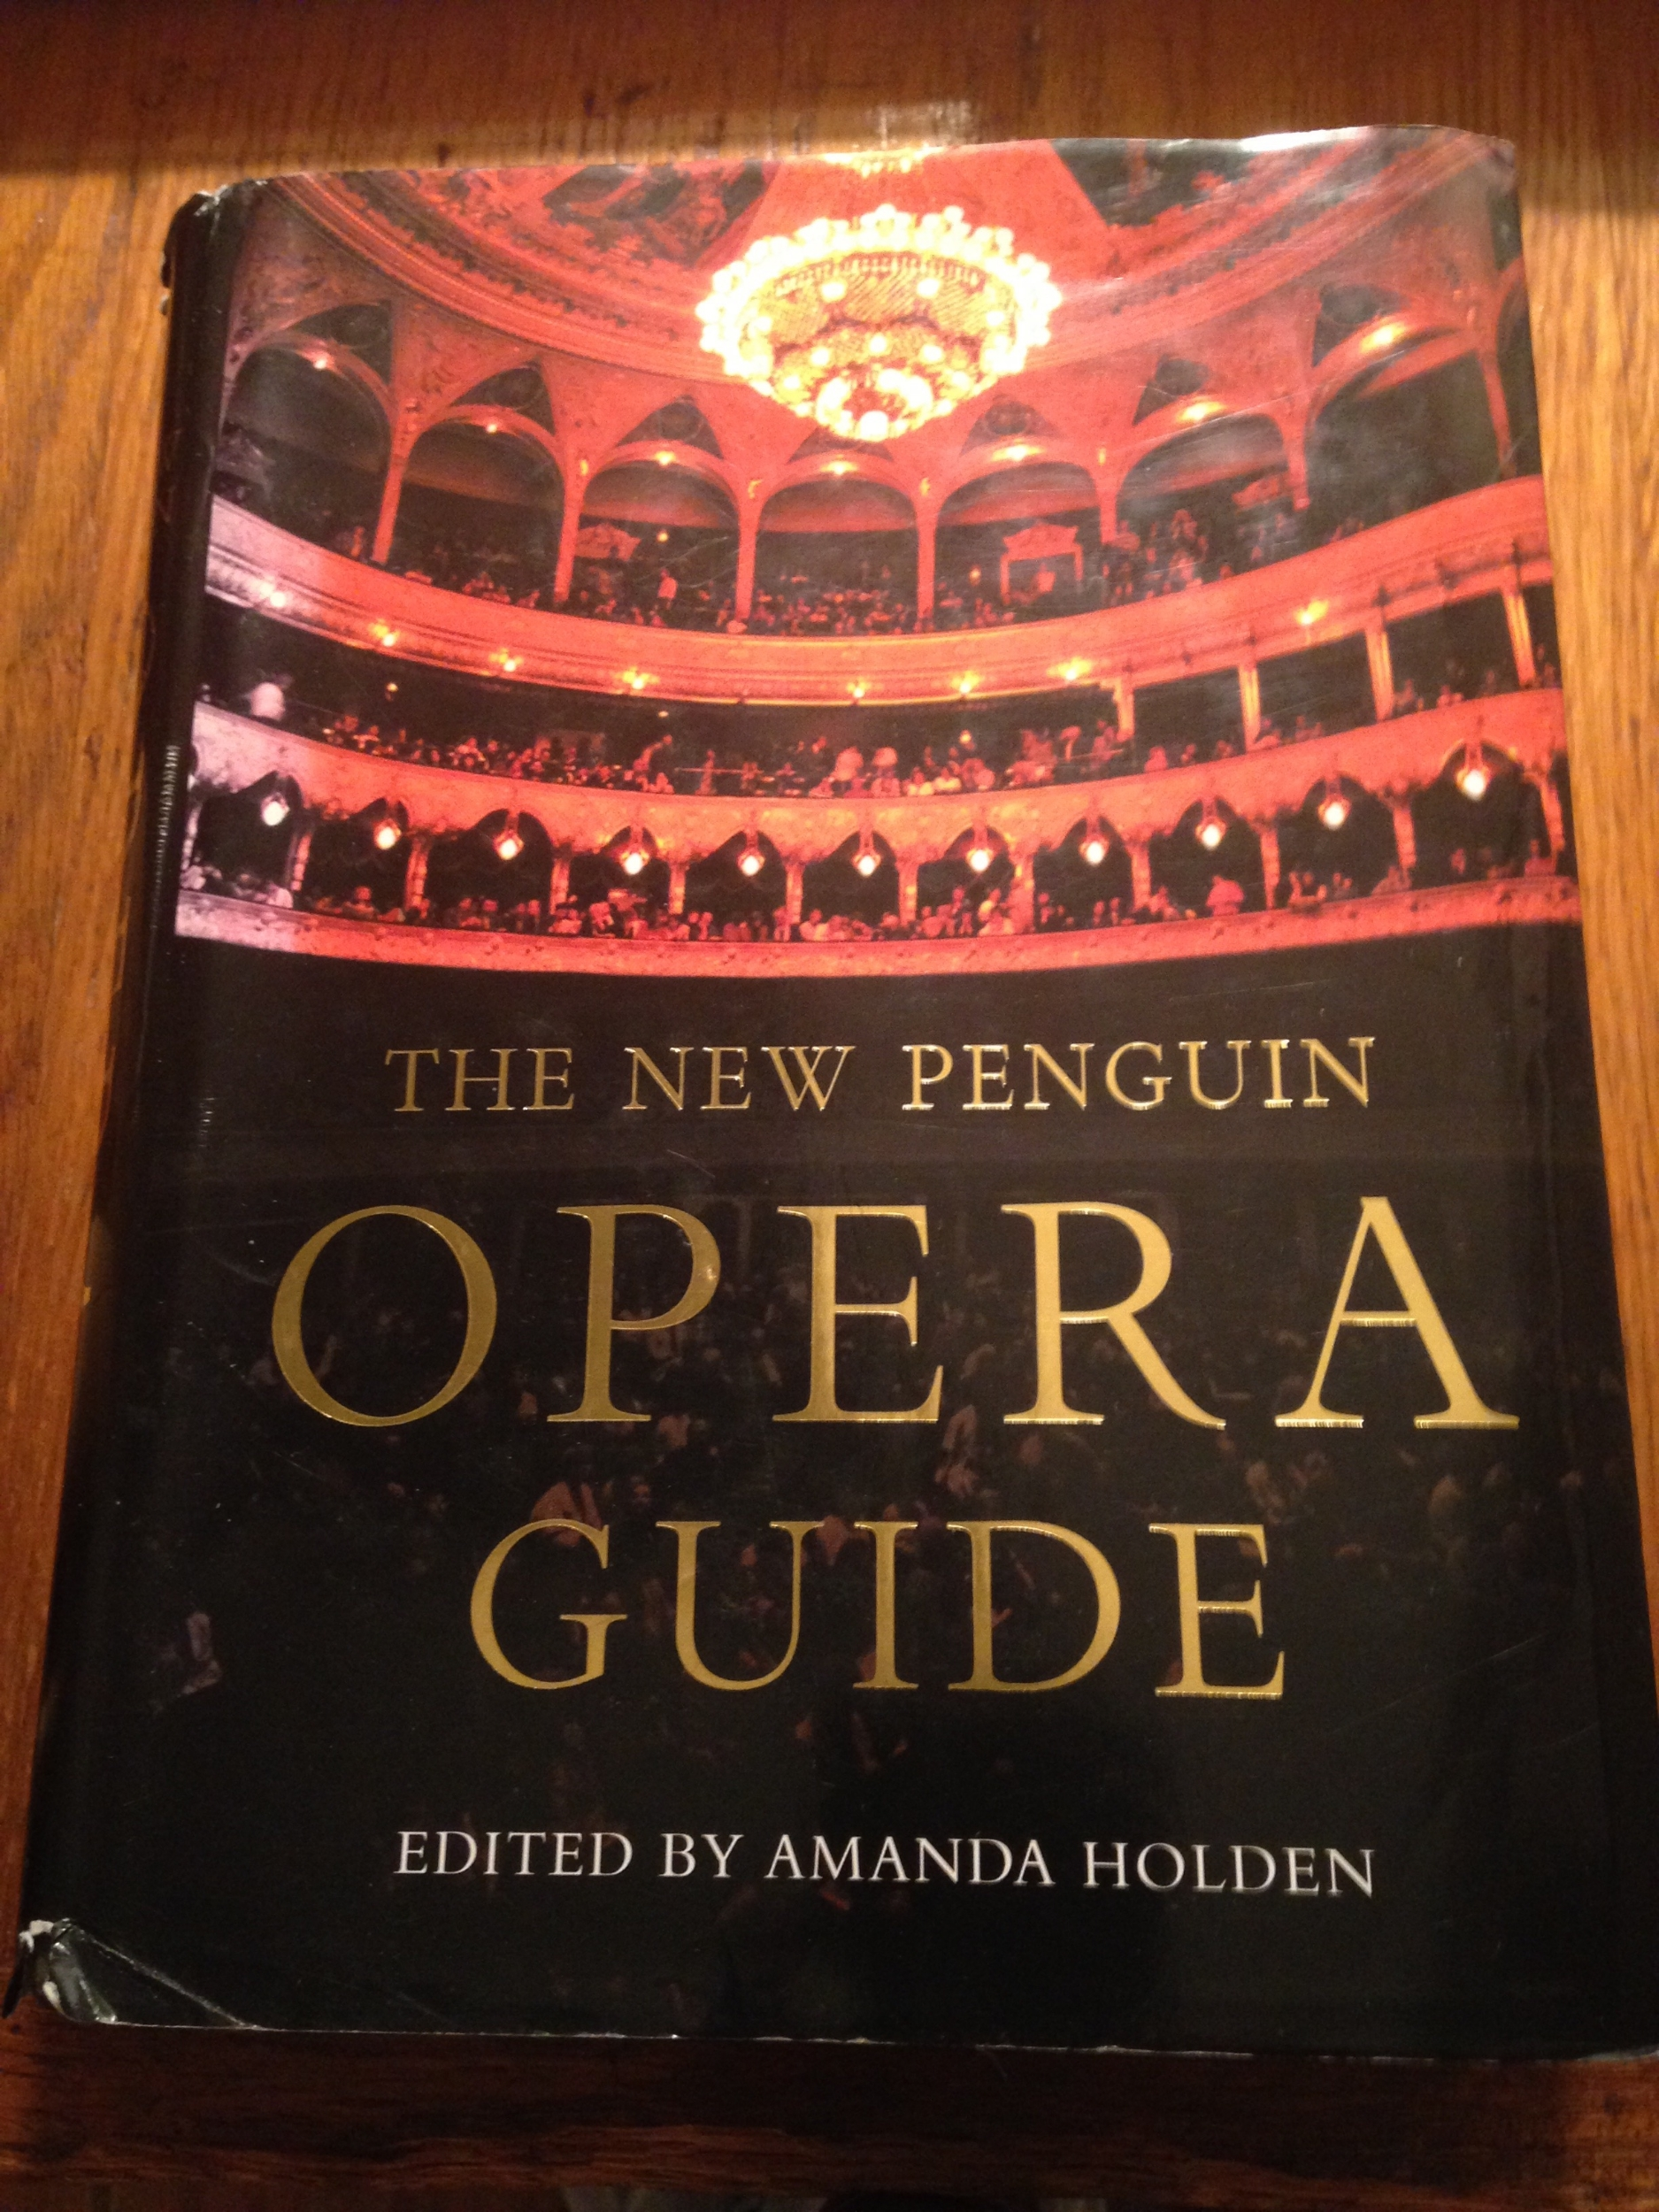 The New Penguin Opera Guide, edited by Amanda Holden, 2001. Photo by Author.